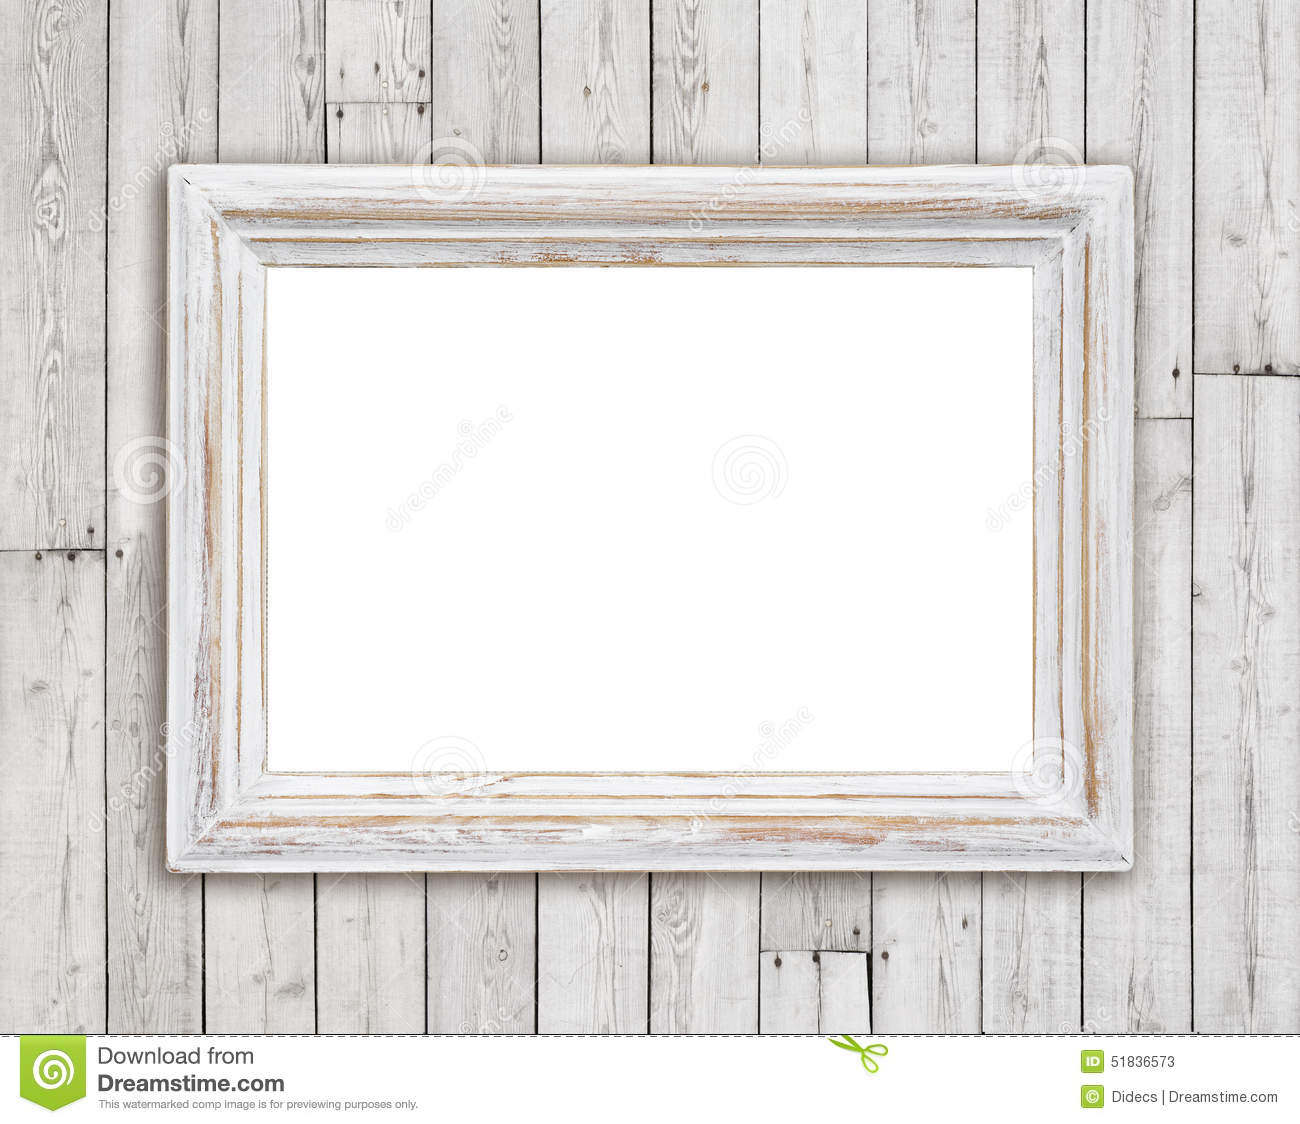 Bleached wooden picture frame on vintage plank wall for Marcos para cuadros